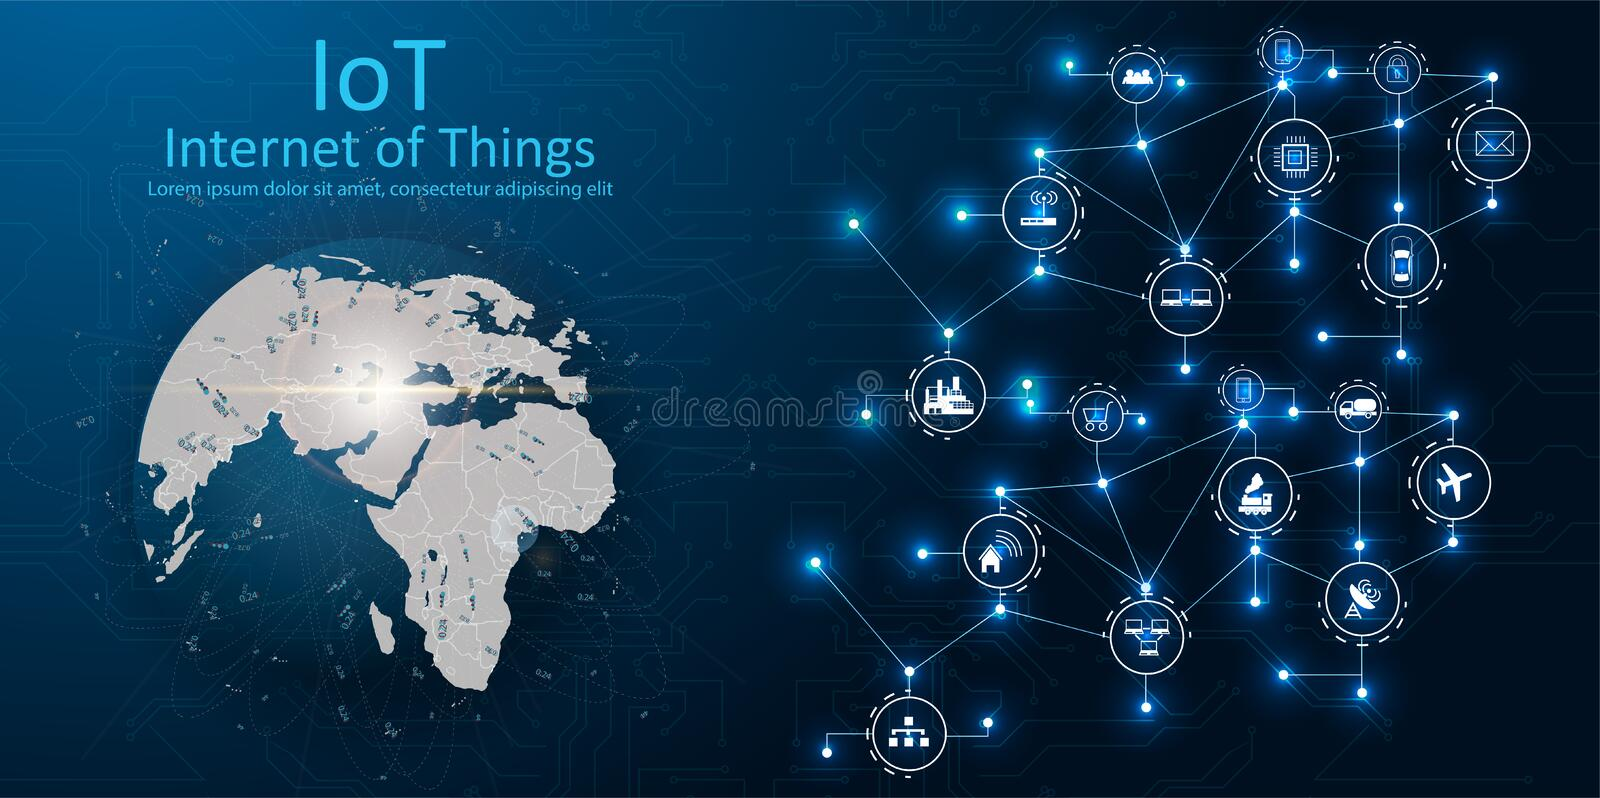 IOT, devices and connectivity concepts on a network, cloud at center. digital circuit board above the planet Earth. royalty free illustration